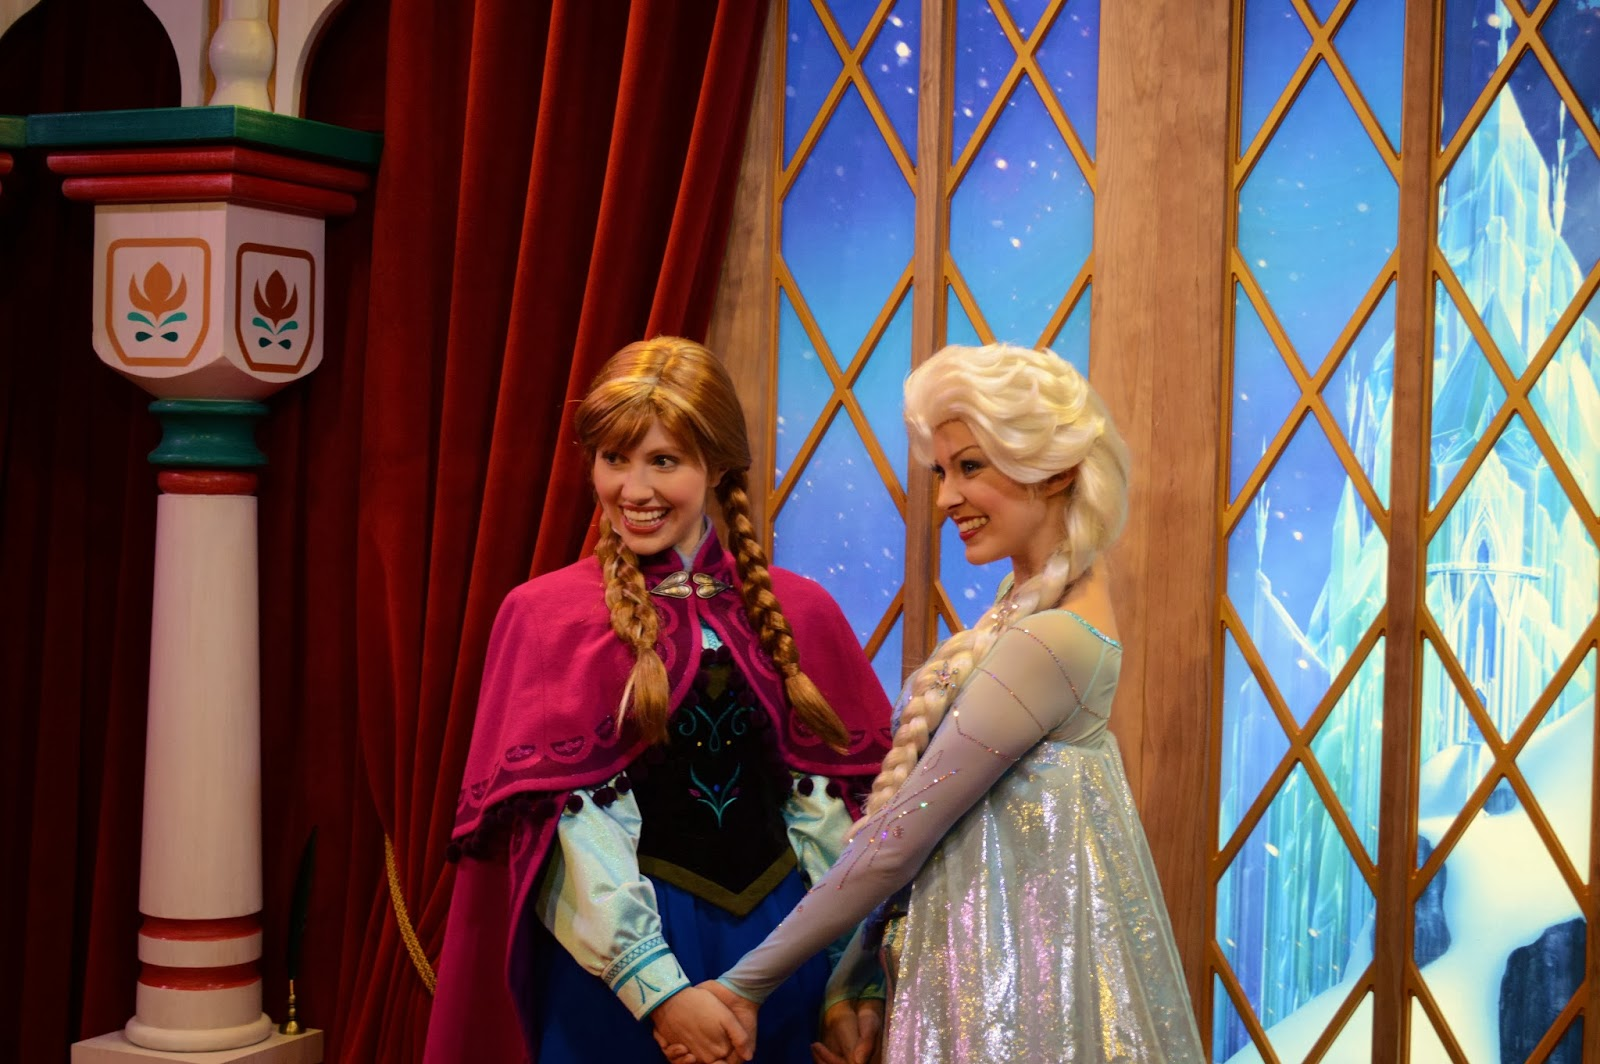 All around orlando anna elsa from frozen start meet greet at anna elsa from frozen start meet greet at epcot in norway 11213 m4hsunfo